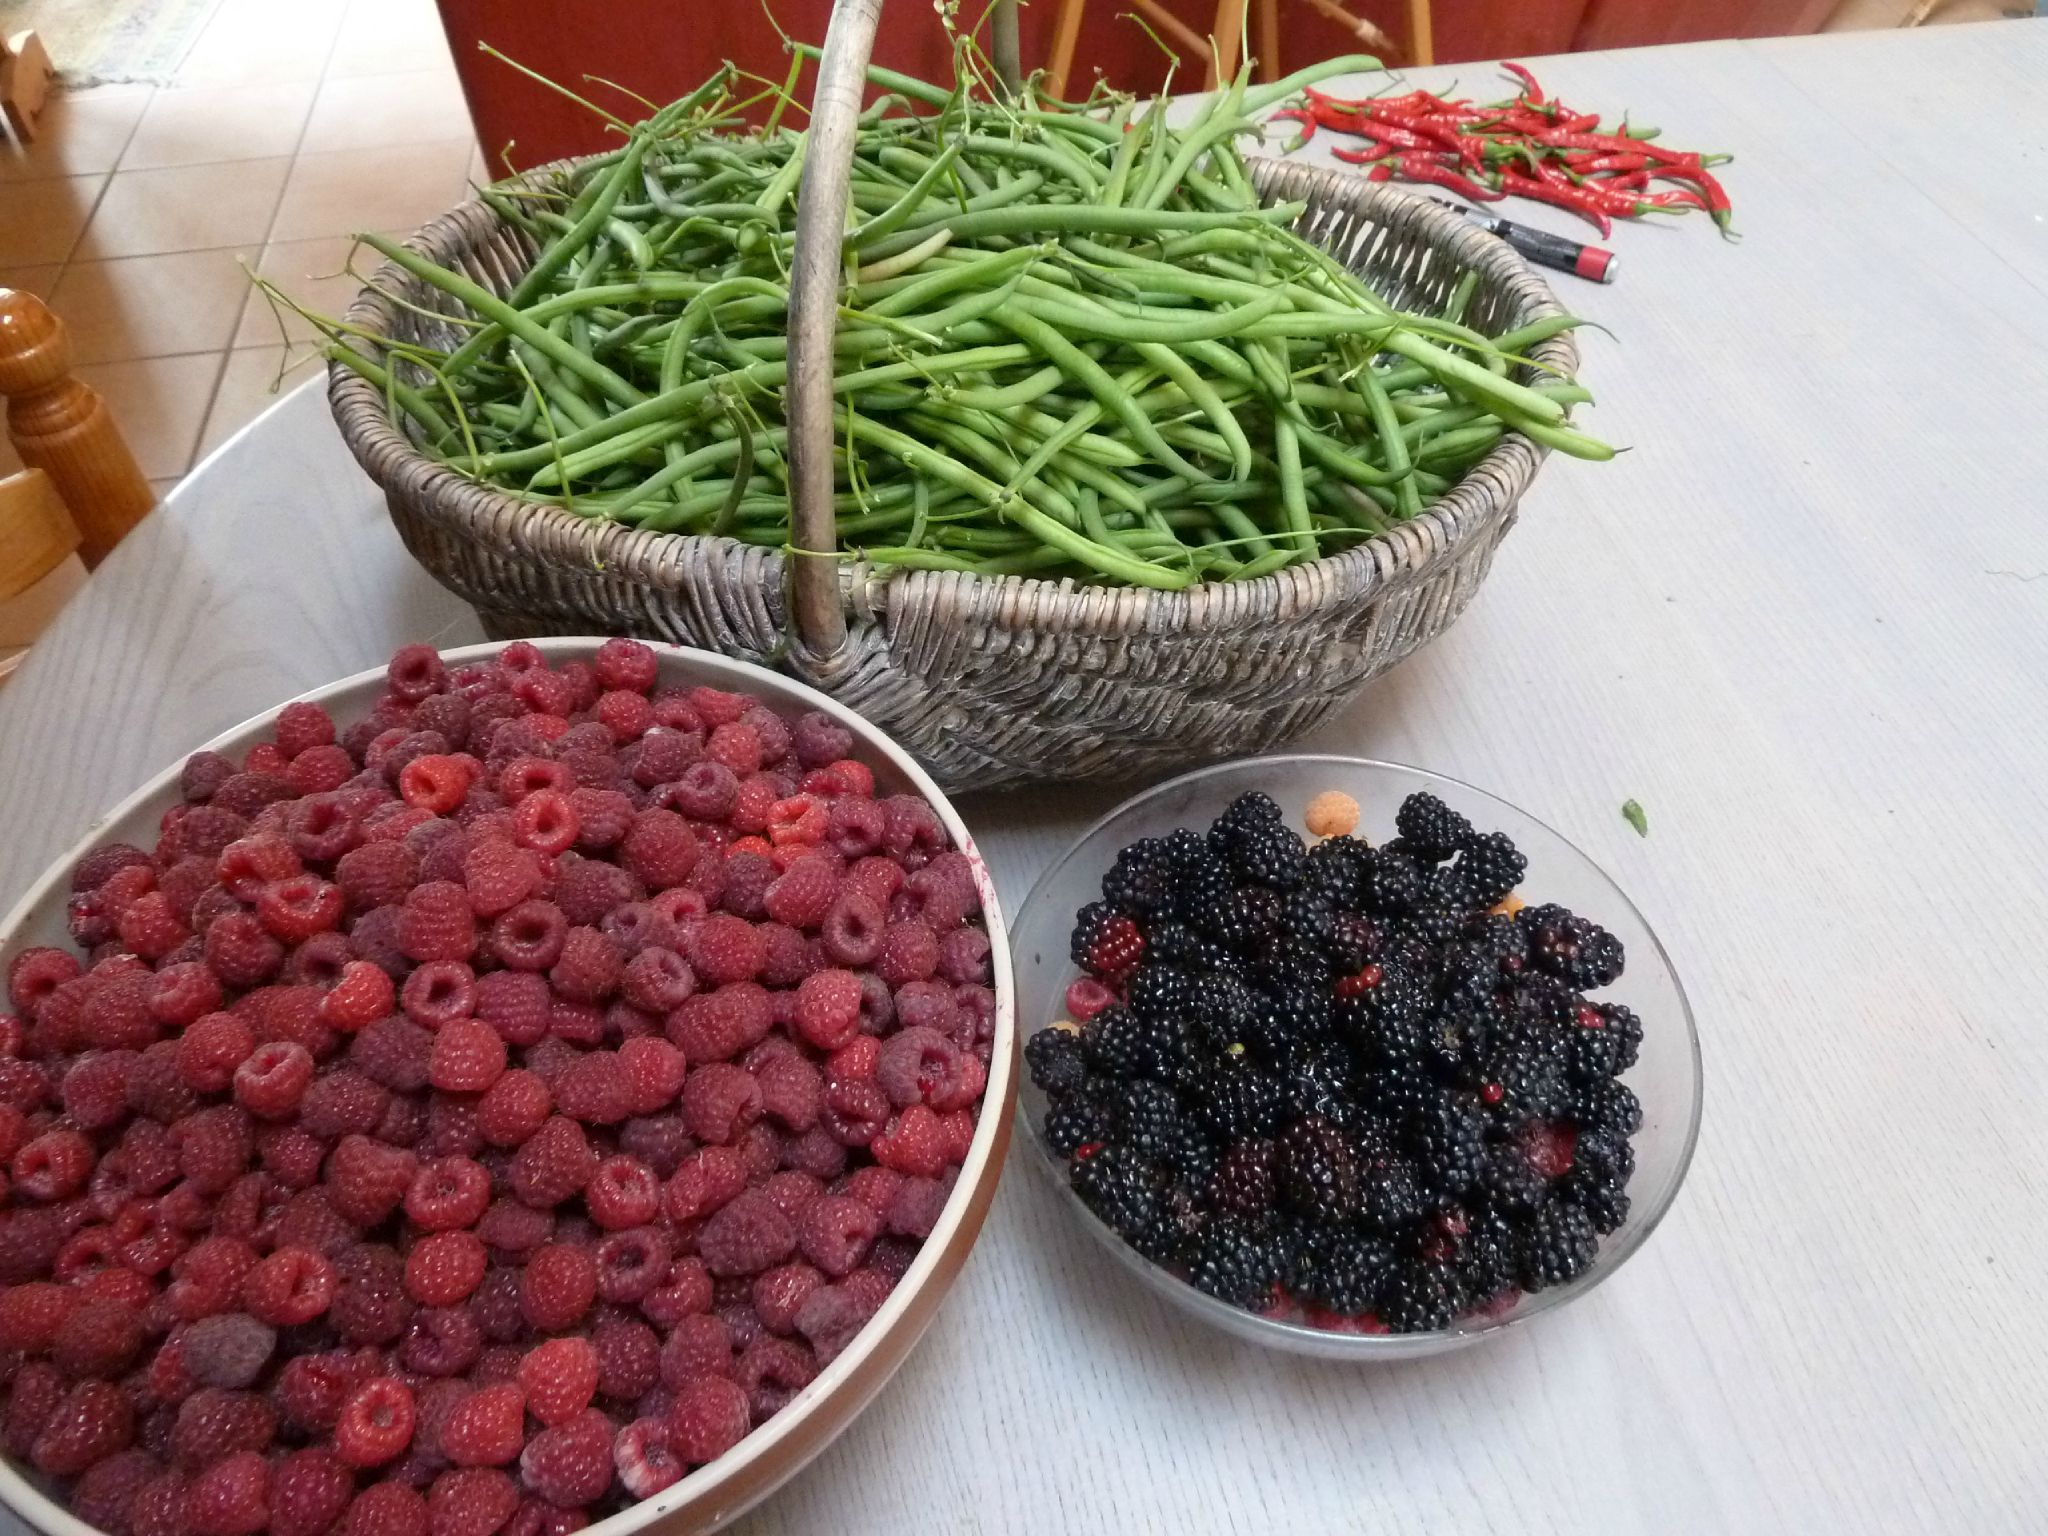 haricots verts-mûres-framboises -- www.passionpotager.canalblog.com